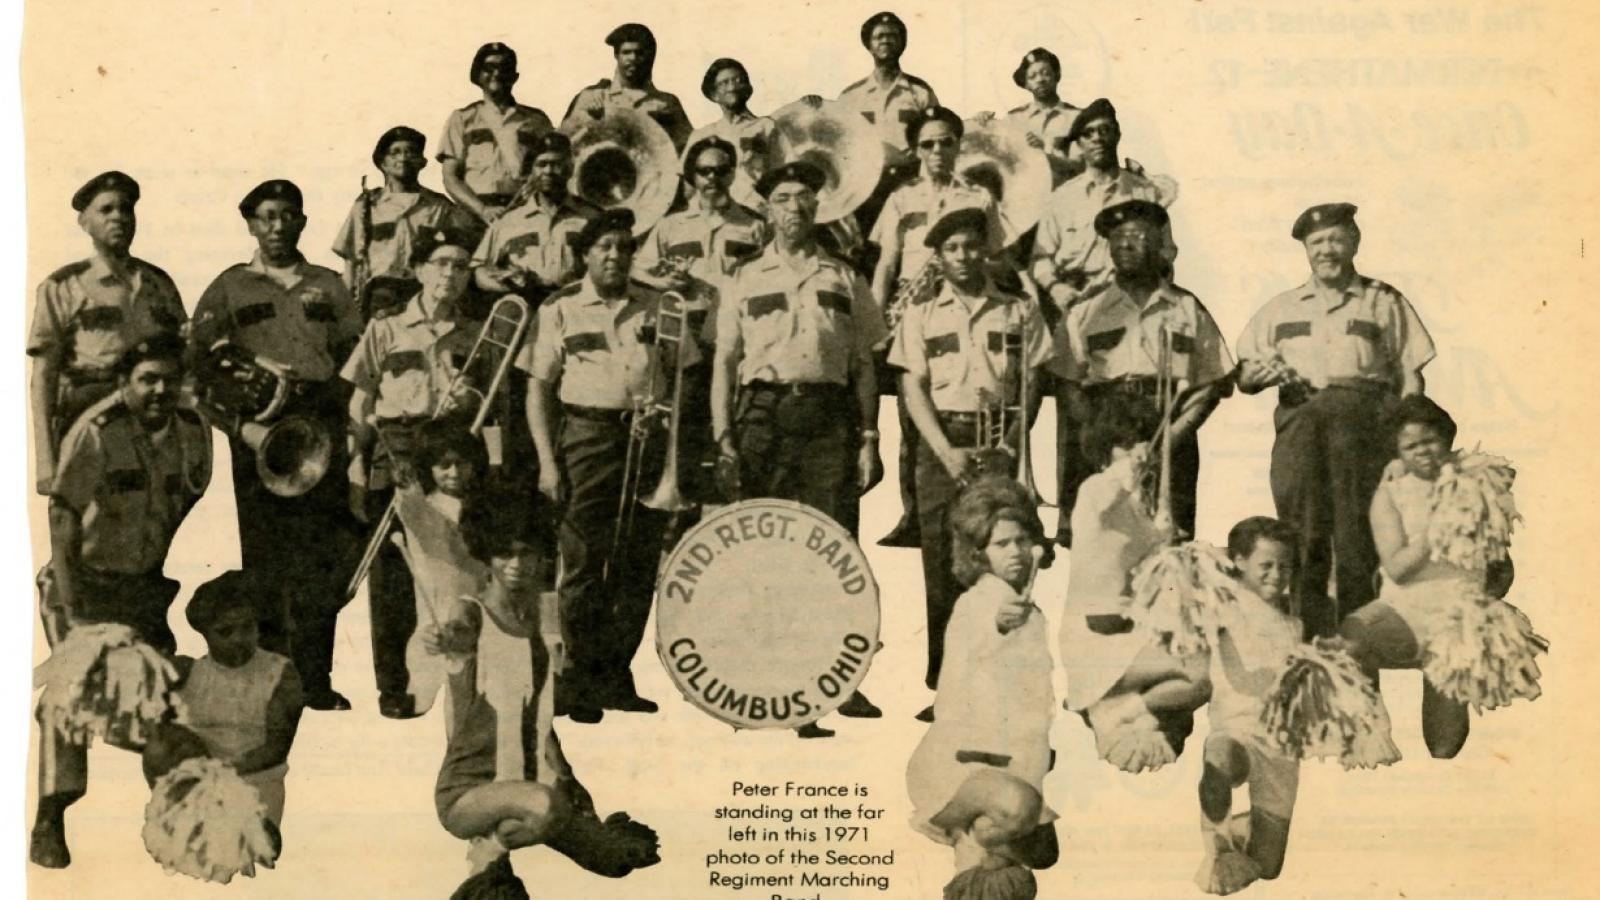 The Second Regiment Marching Band. Columbus, Ohio, 1971.